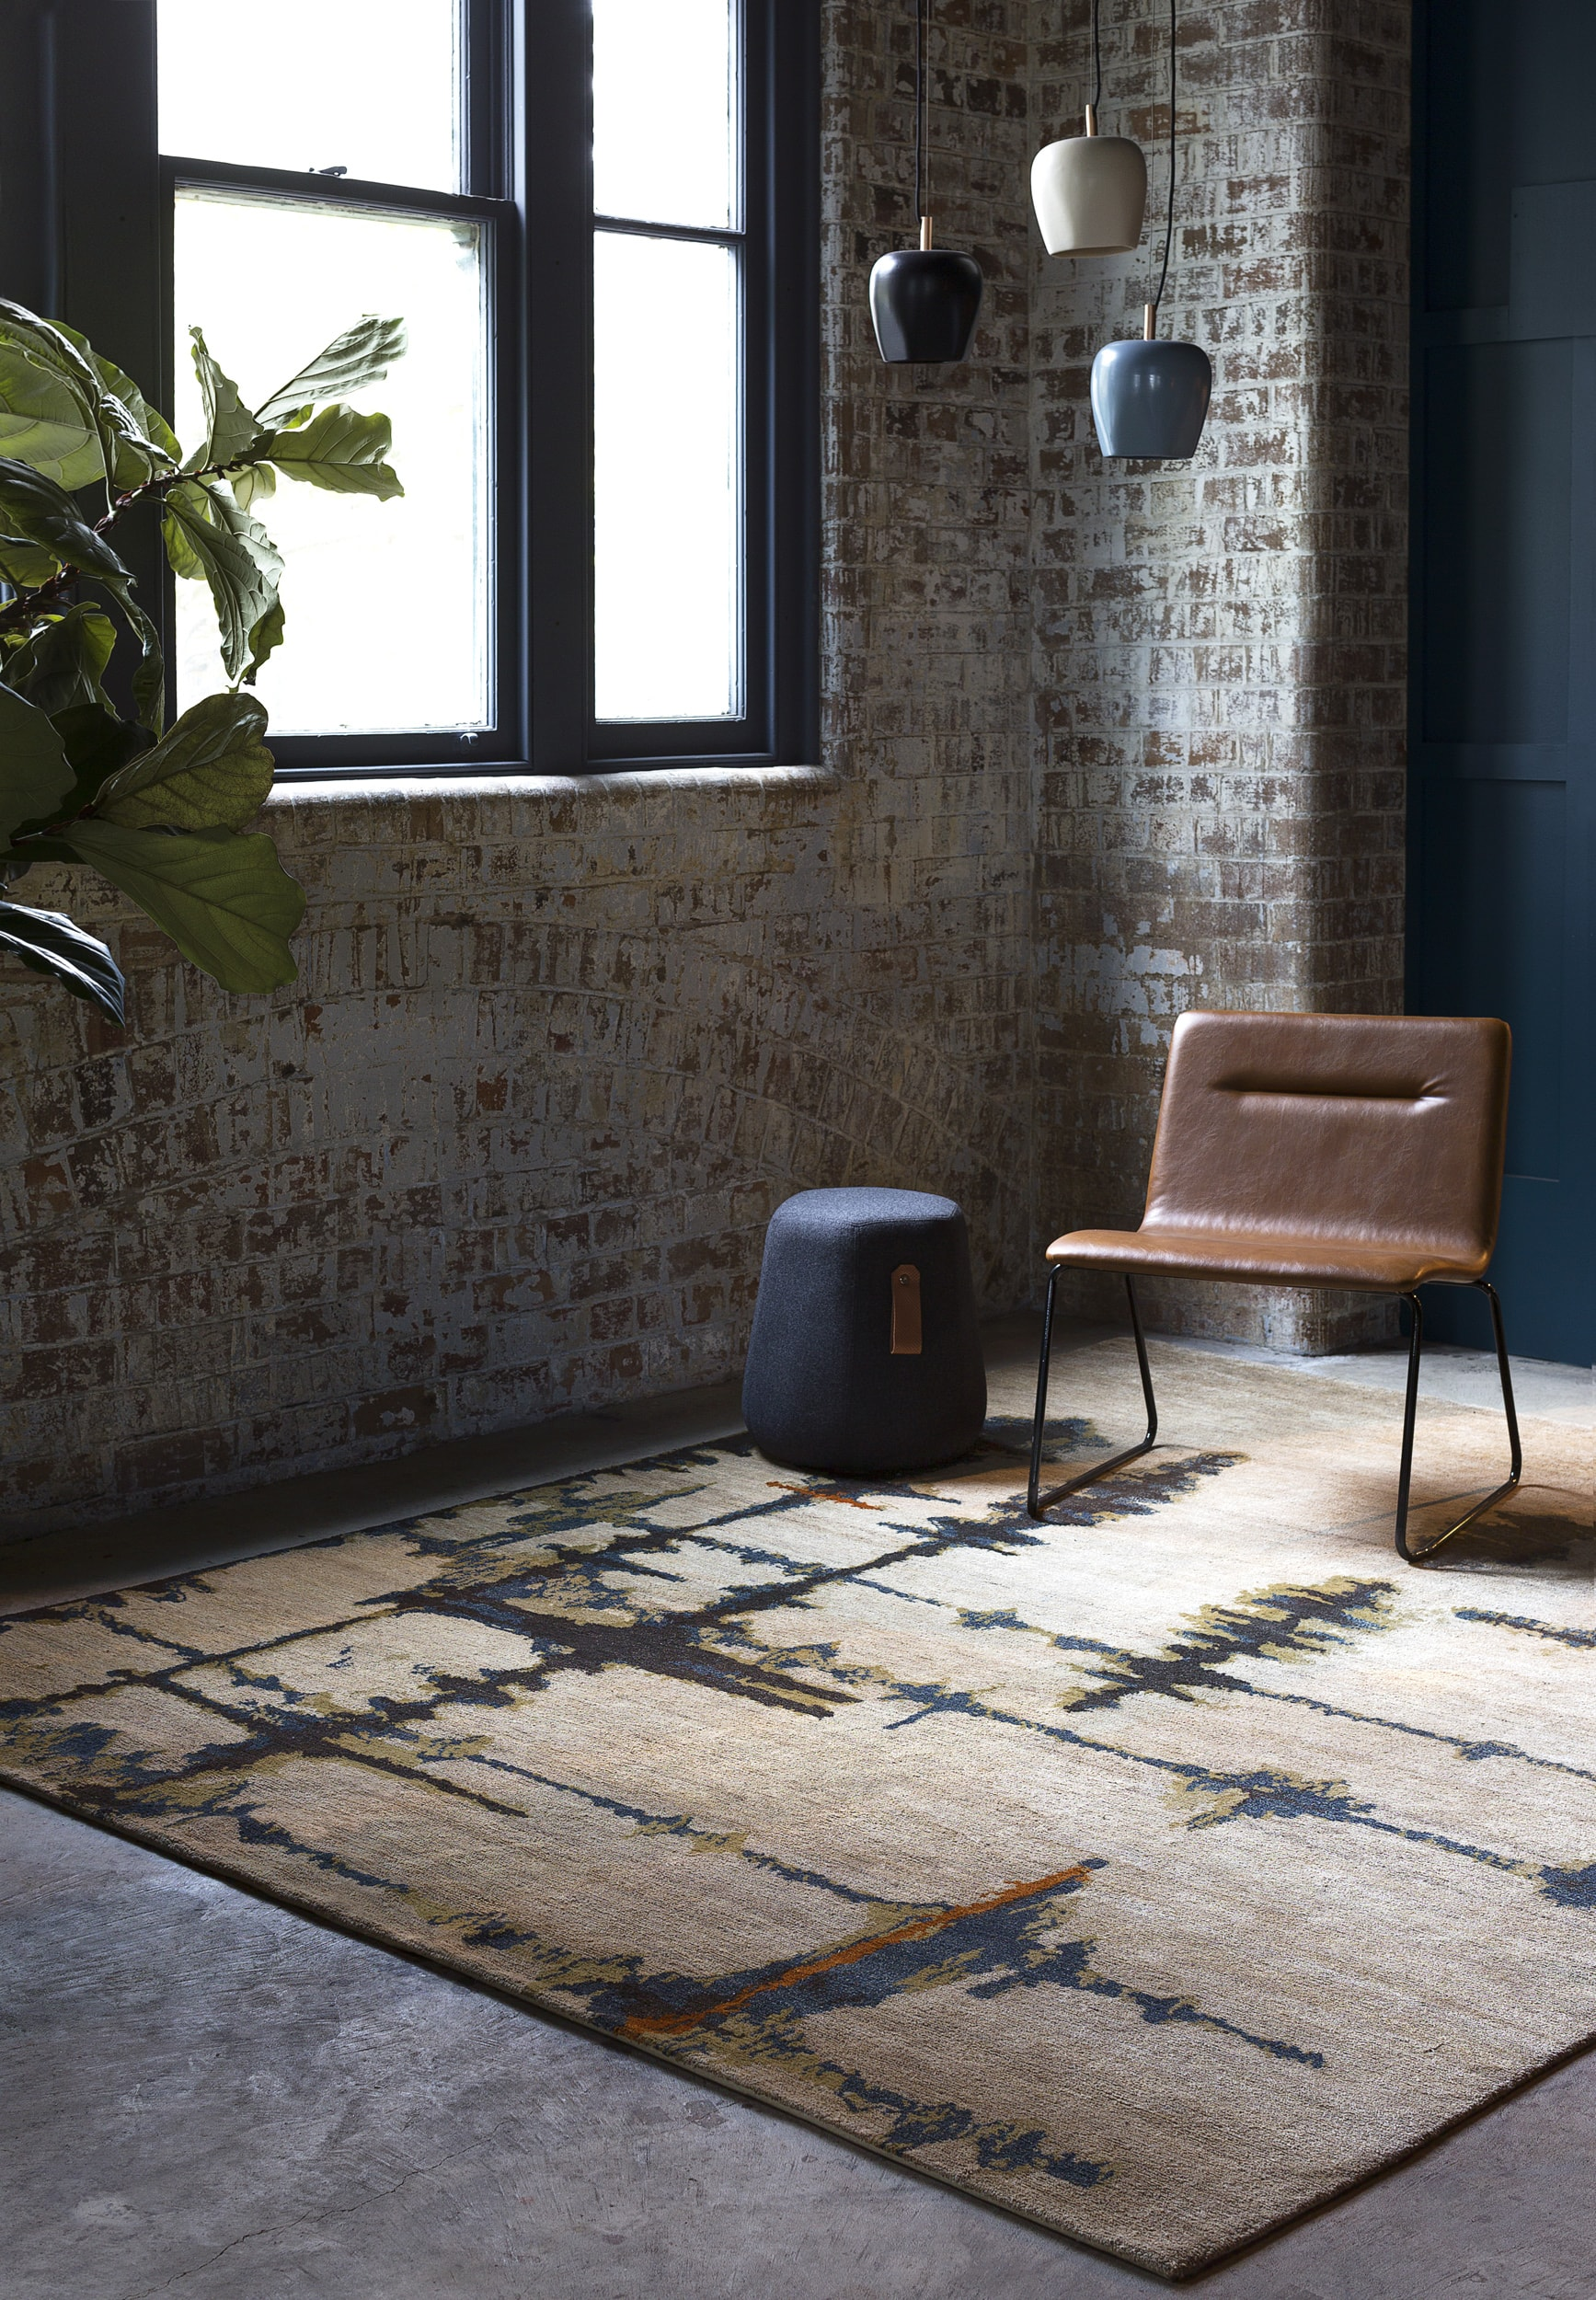 Designer Rugs Launch New Collection In Collaboration With Hare And Klein Collection Feature Australiainlets Edit 2 Min